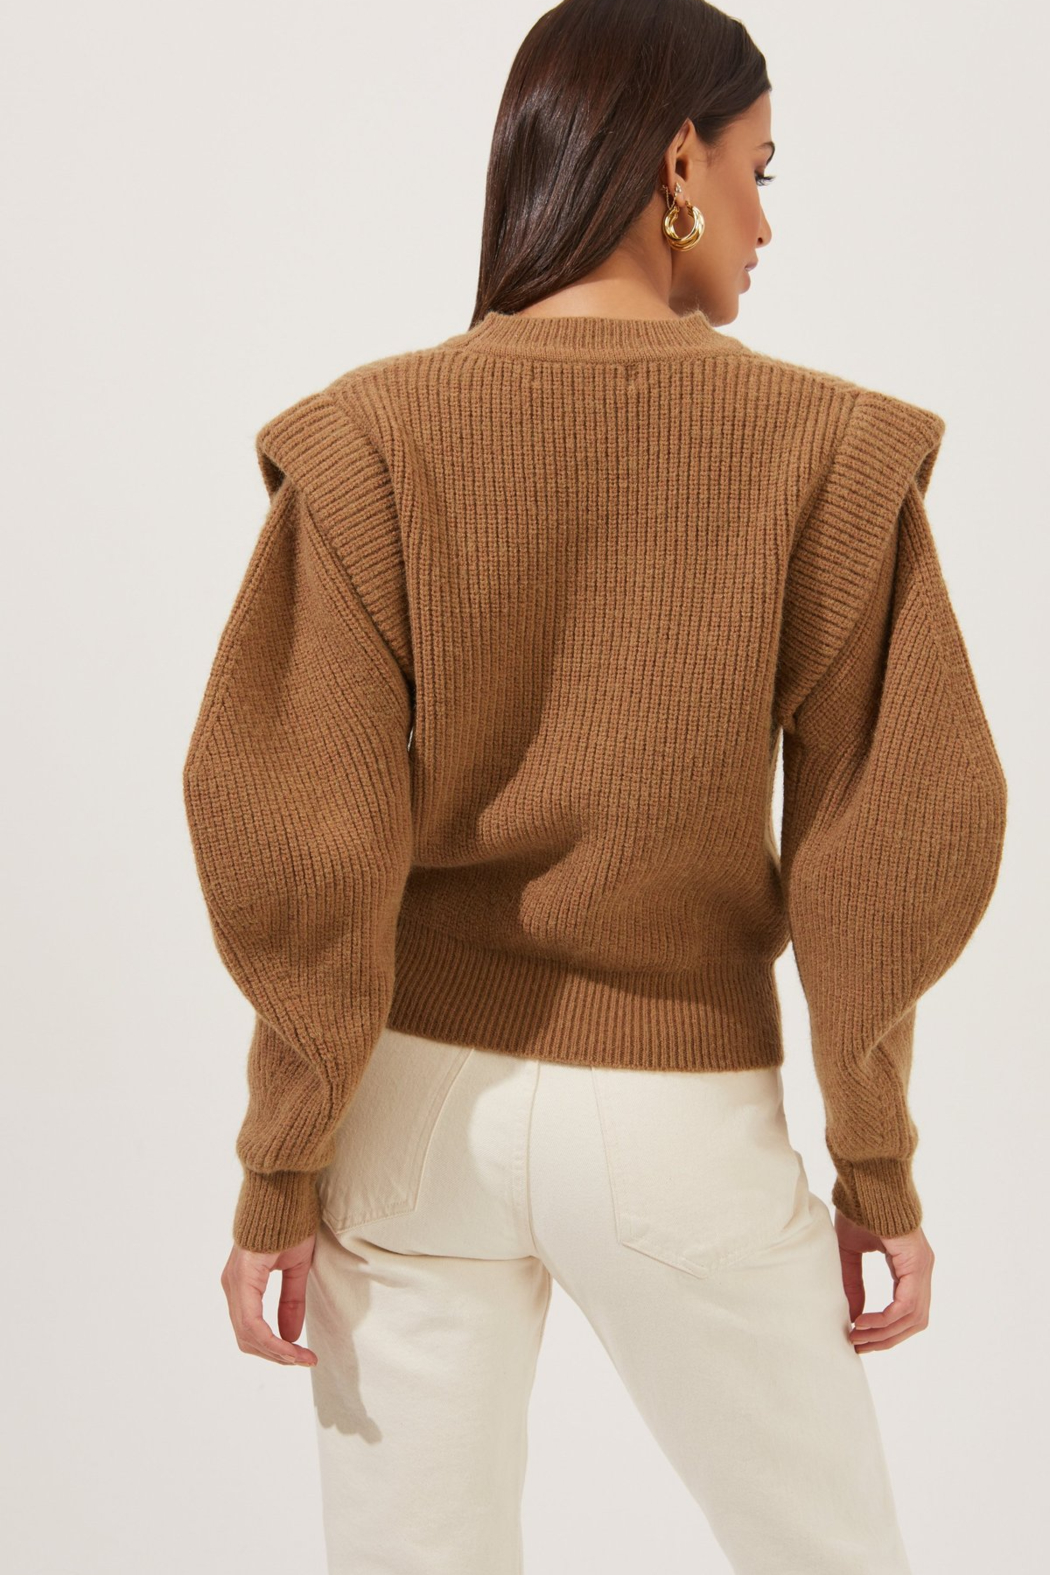 ASTR the Label Romina Sweater - Back Cropped Image